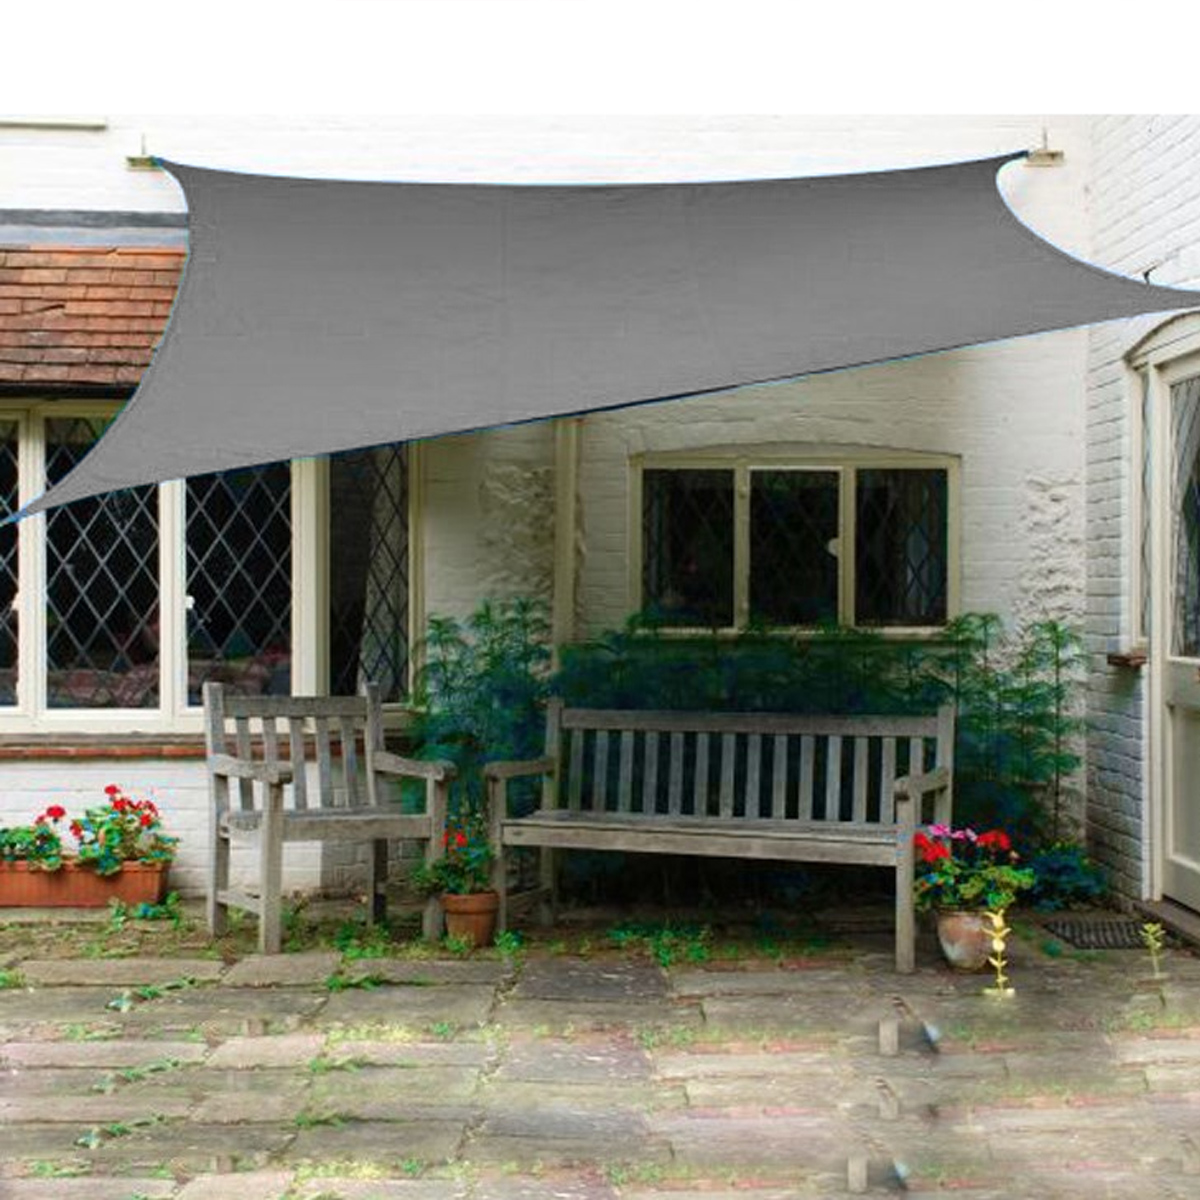 Tent Sunshade Sail Waterproof 420D Oxford Polyester Garden Canopy Cover Awning Outdoor Marine Yard Plant Protection